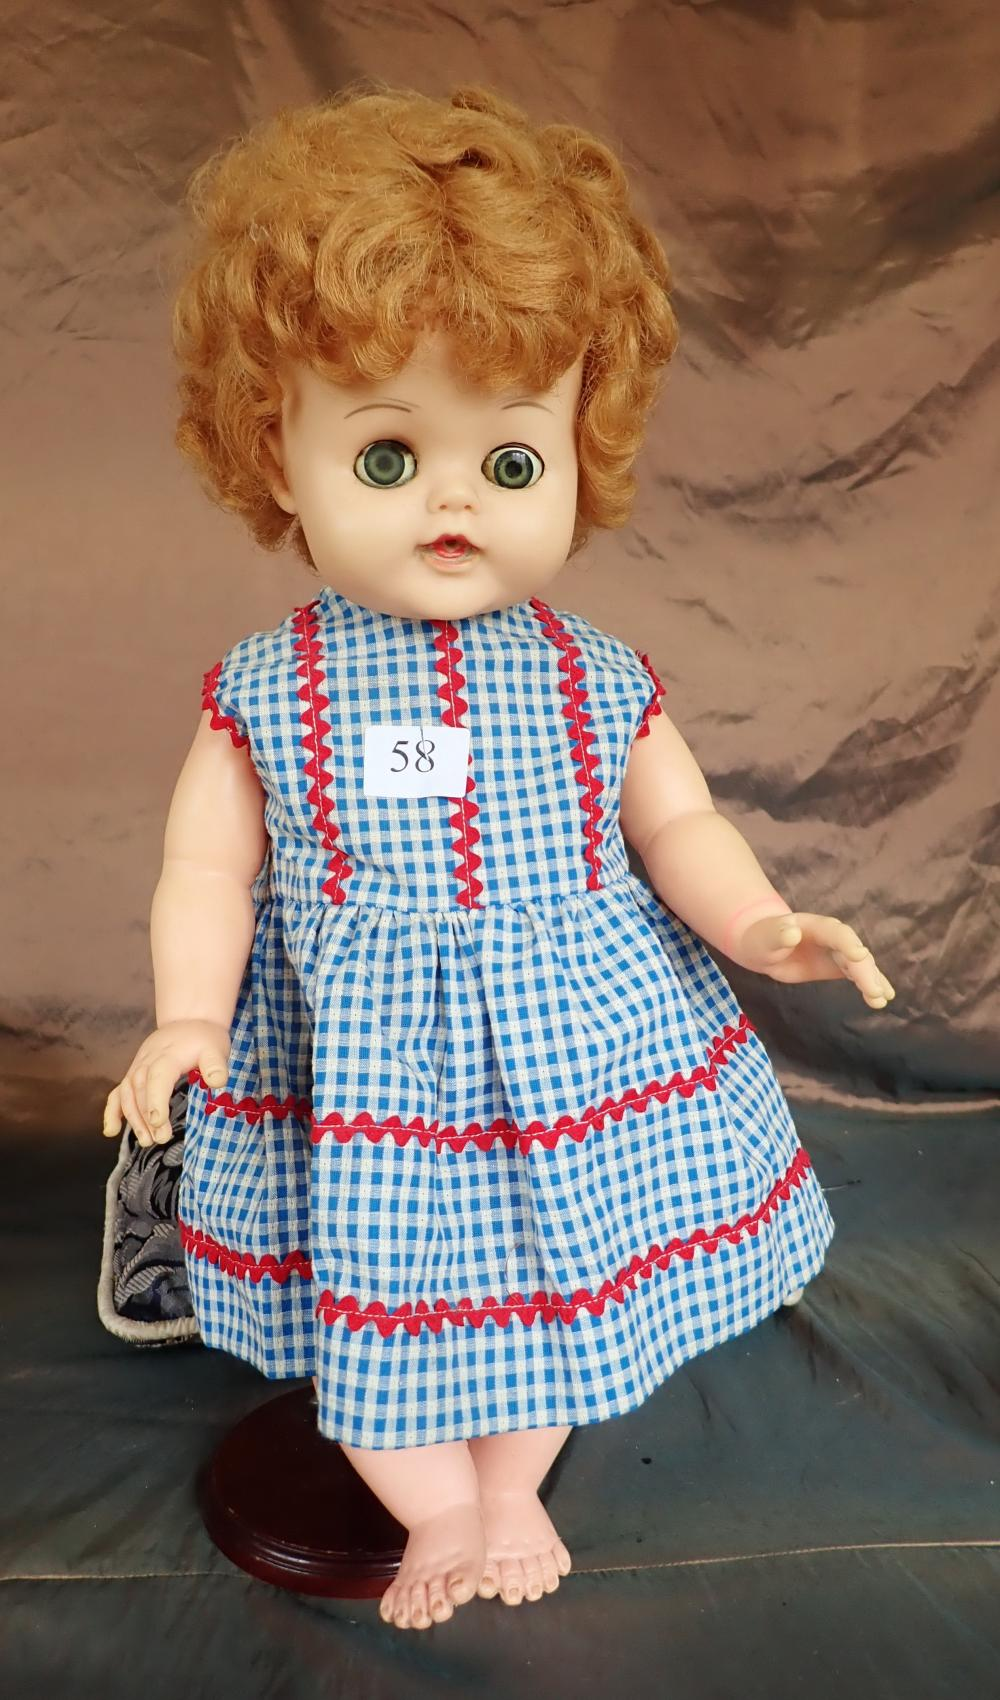 "3 DOLLS (1) 21 INCH PLASTIC RELIABLE DOLL CANADA (2) 22 INCH HARD PLASTIC DOLL WITH VOICE BOX TO THE FRONT, NO CLOTHES, DAMAGED TO UNDER SOLE OF FEET , BOTH WITH MOVEABLE EYES (3) REPRODUCTION MADE IN GERMANY BISQUE HEAD DOLL 18""CLOTH BODY PART"